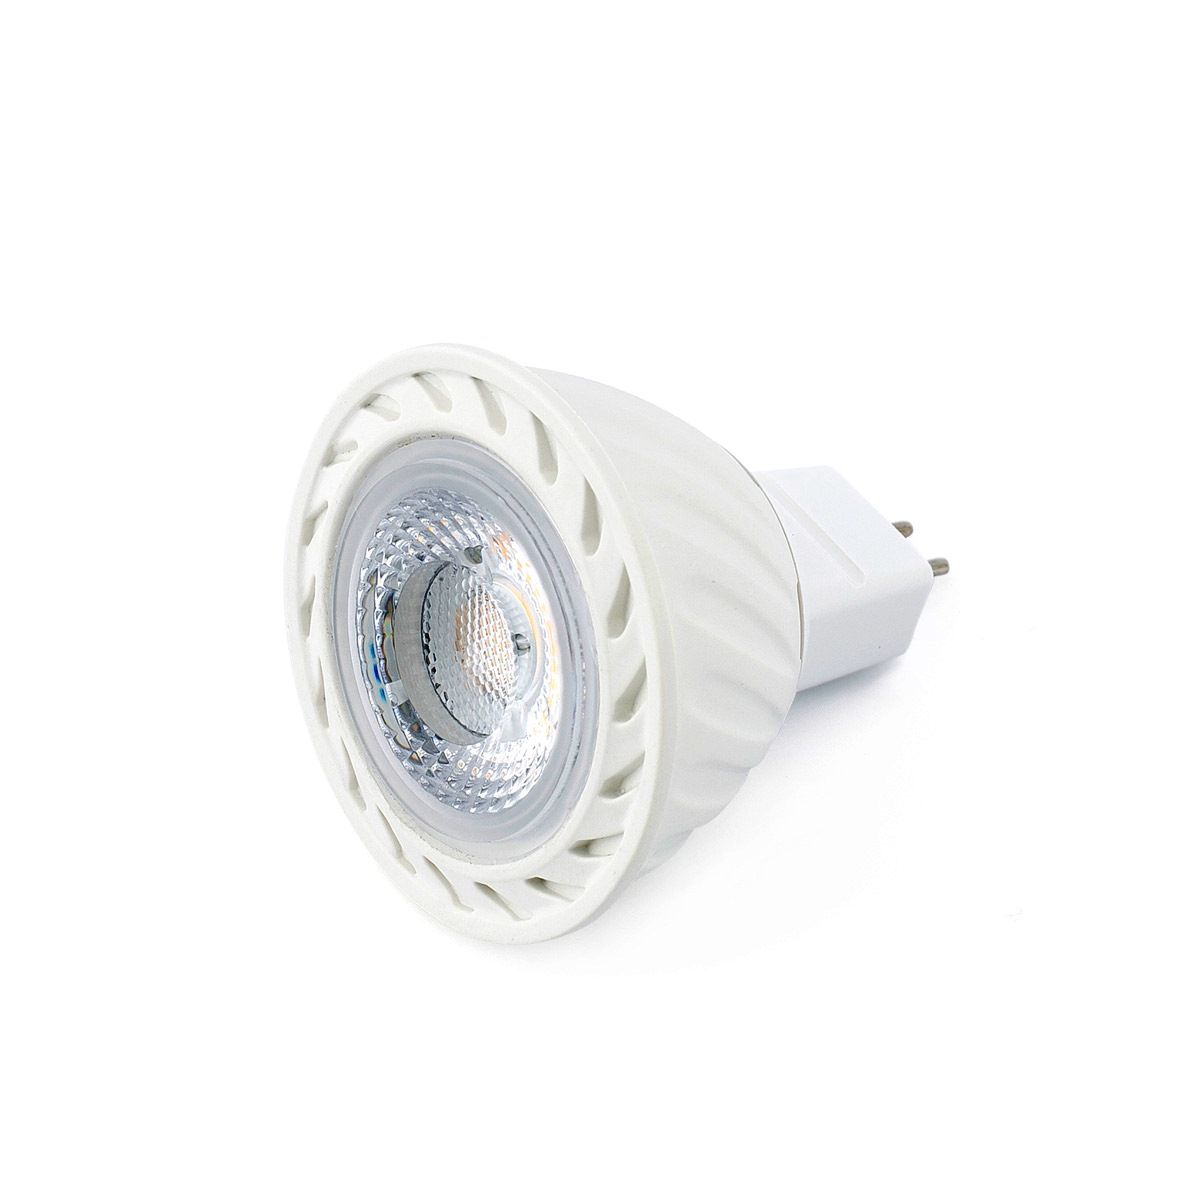 BEC LED MR16 8W 2700K 17326 Faro Barcelona